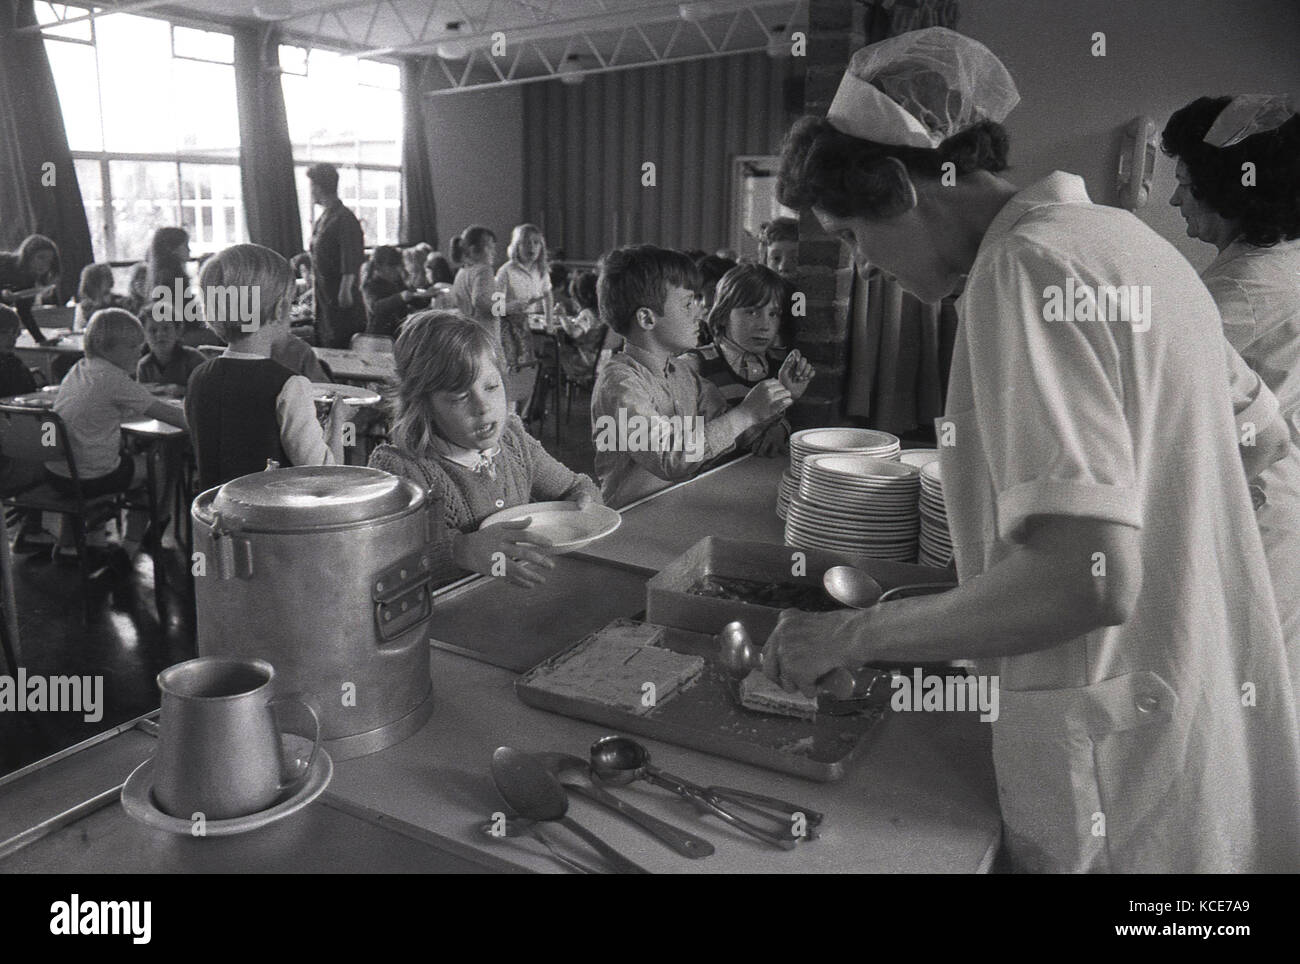 1970s, historical, school dinner ladies serving food to children at lunchtime, Langbourne Primary School, Dulwich, - Stock Image